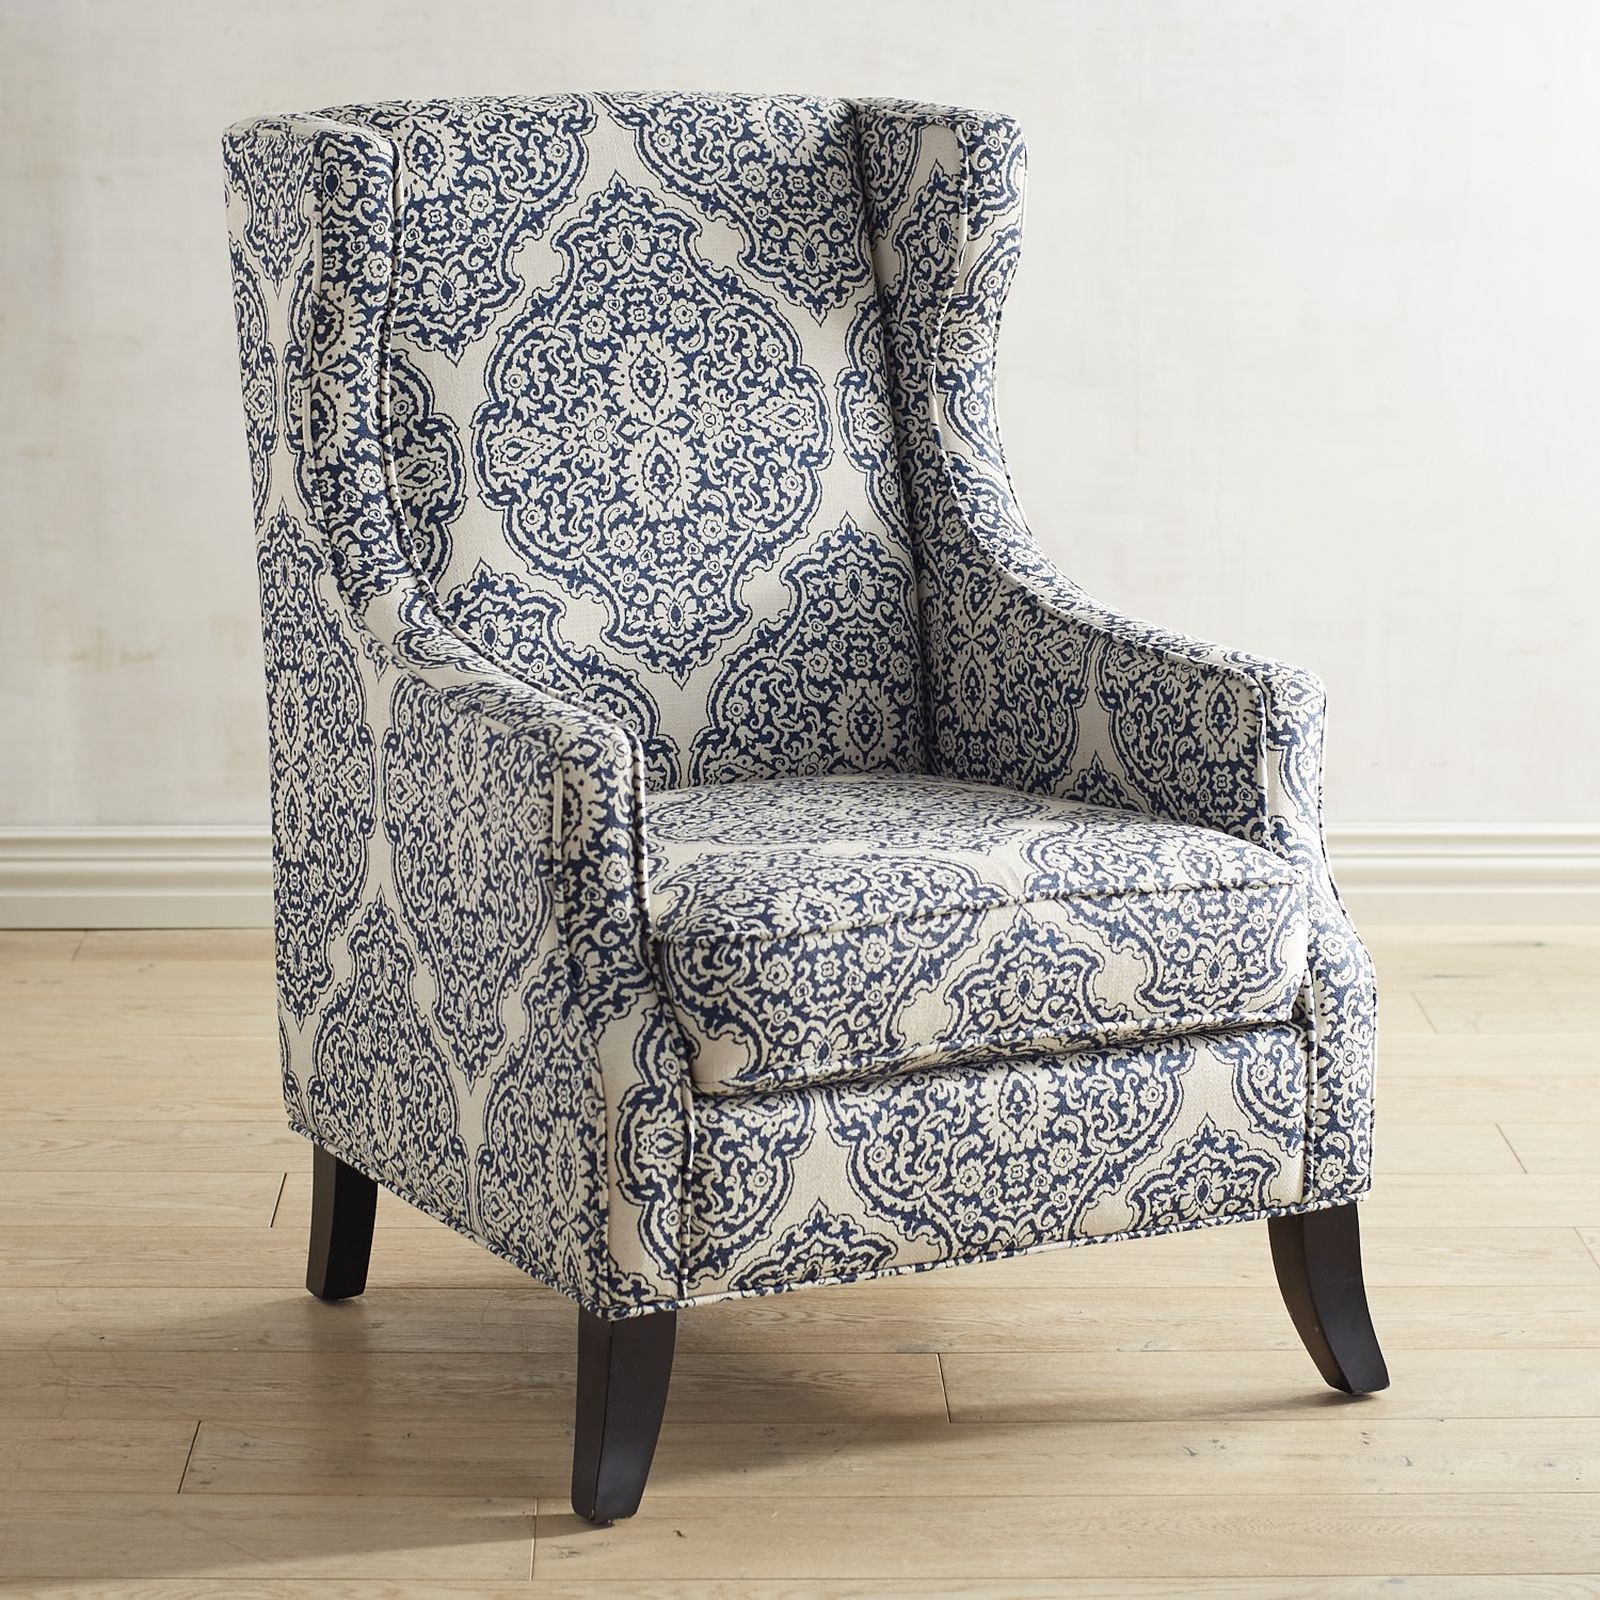 pier 1 imports alec indigo blue wing chair | central heating